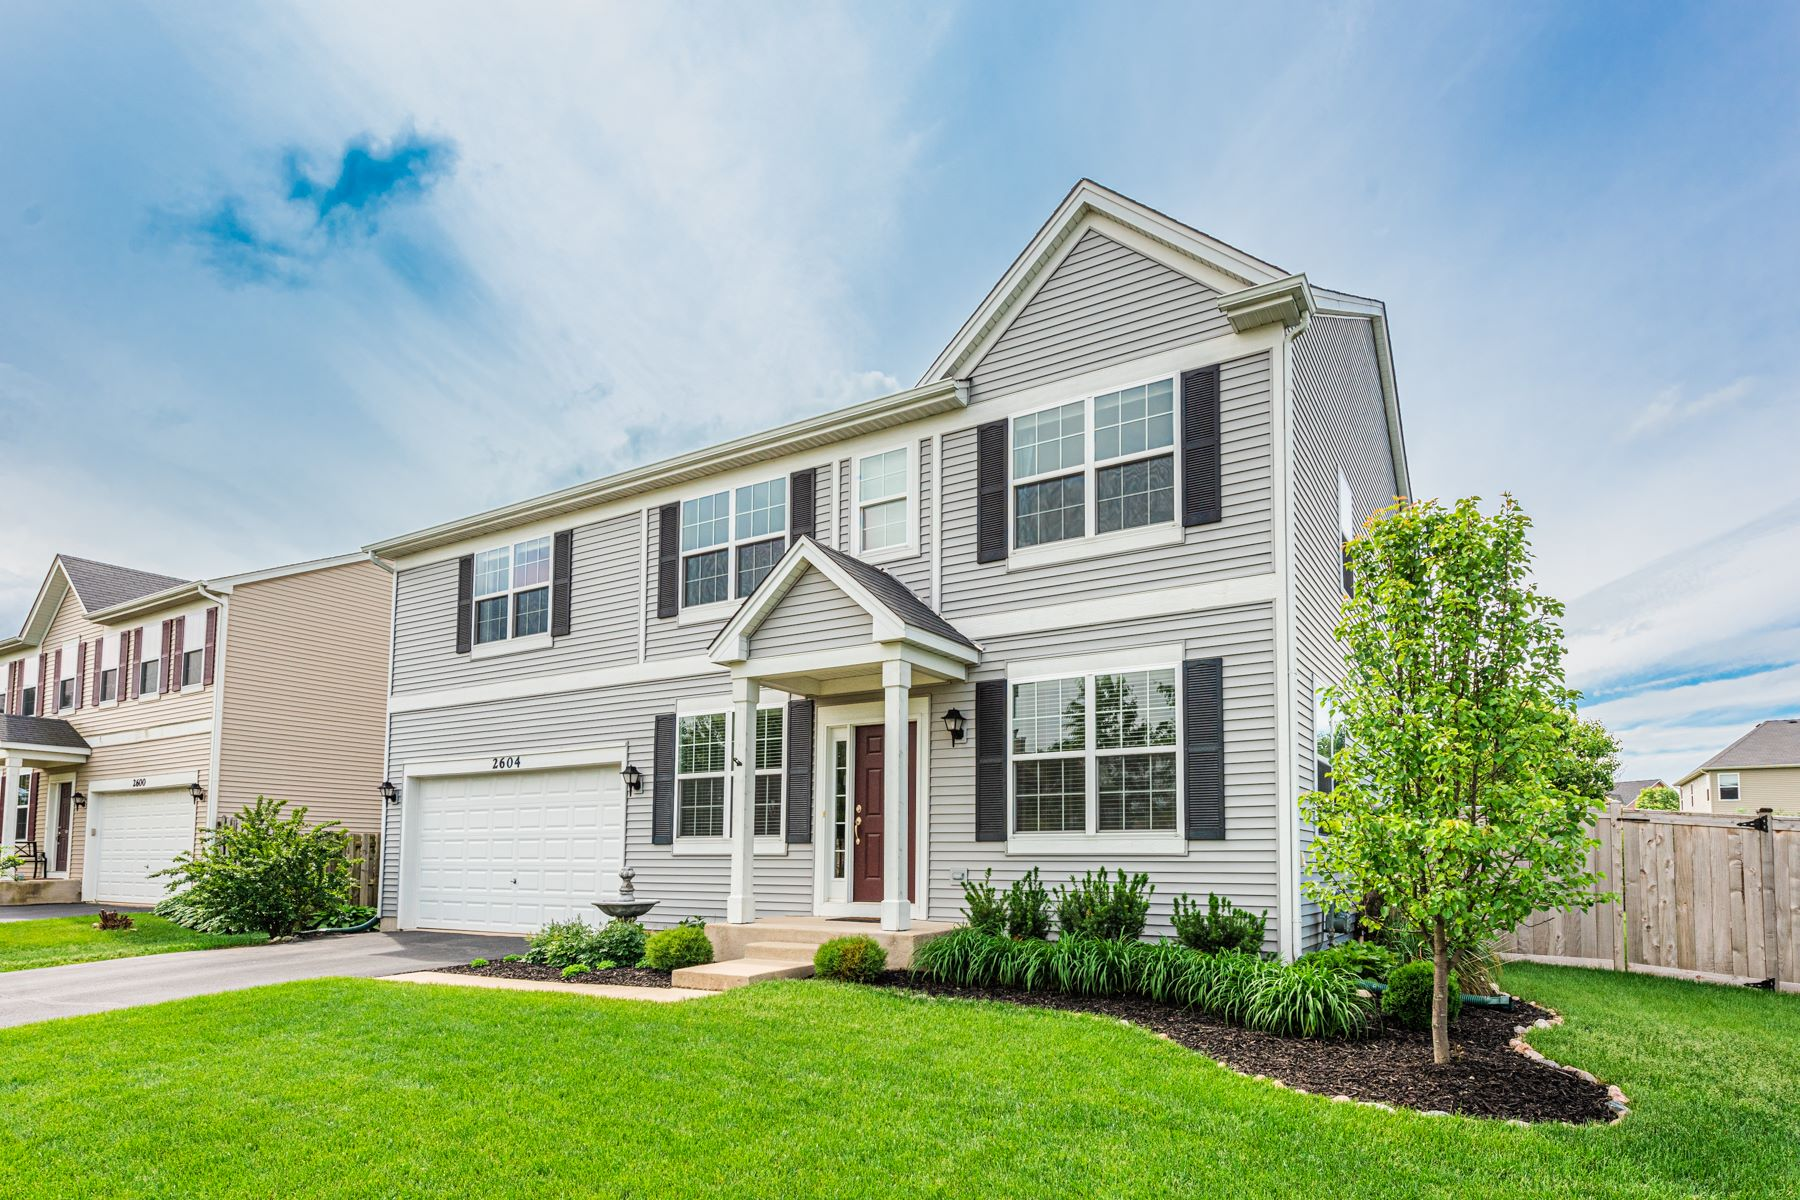 Single Family Homes for Active at Rare Model in Liberty Lakes East 2604 Water Lily Lane Wauconda, Illinois 60084 United States